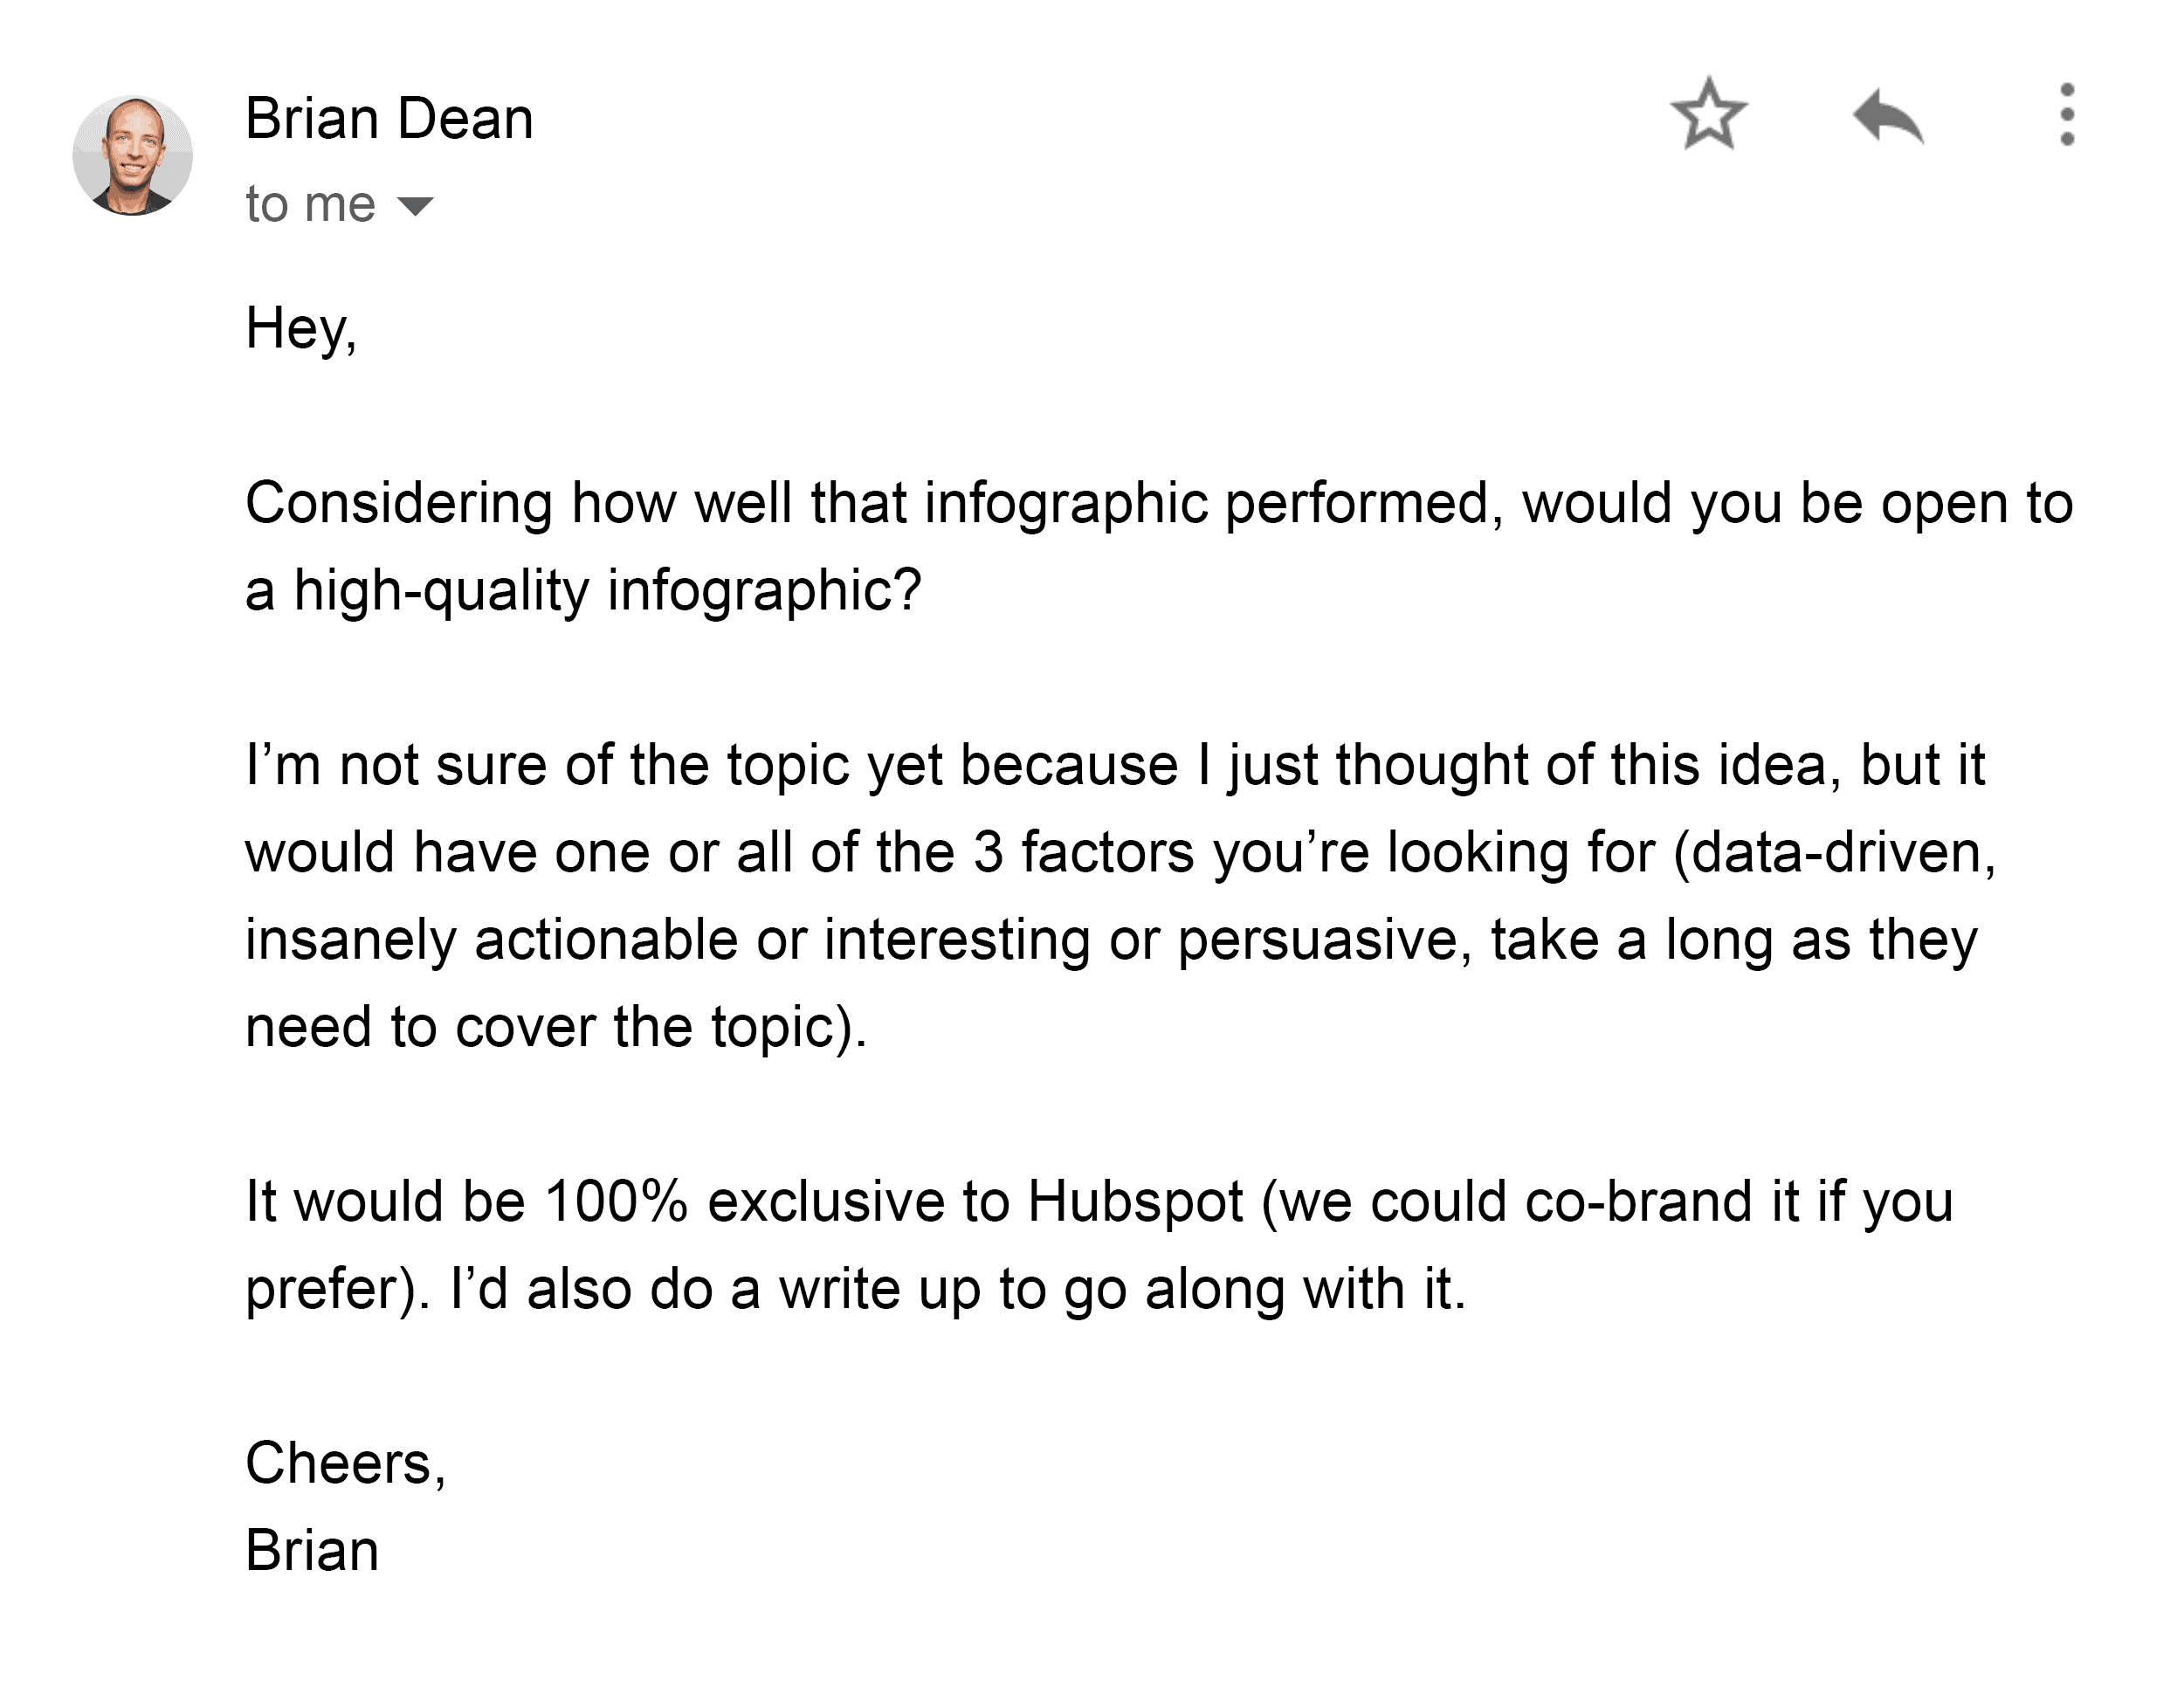 Brian's email to HubSpot